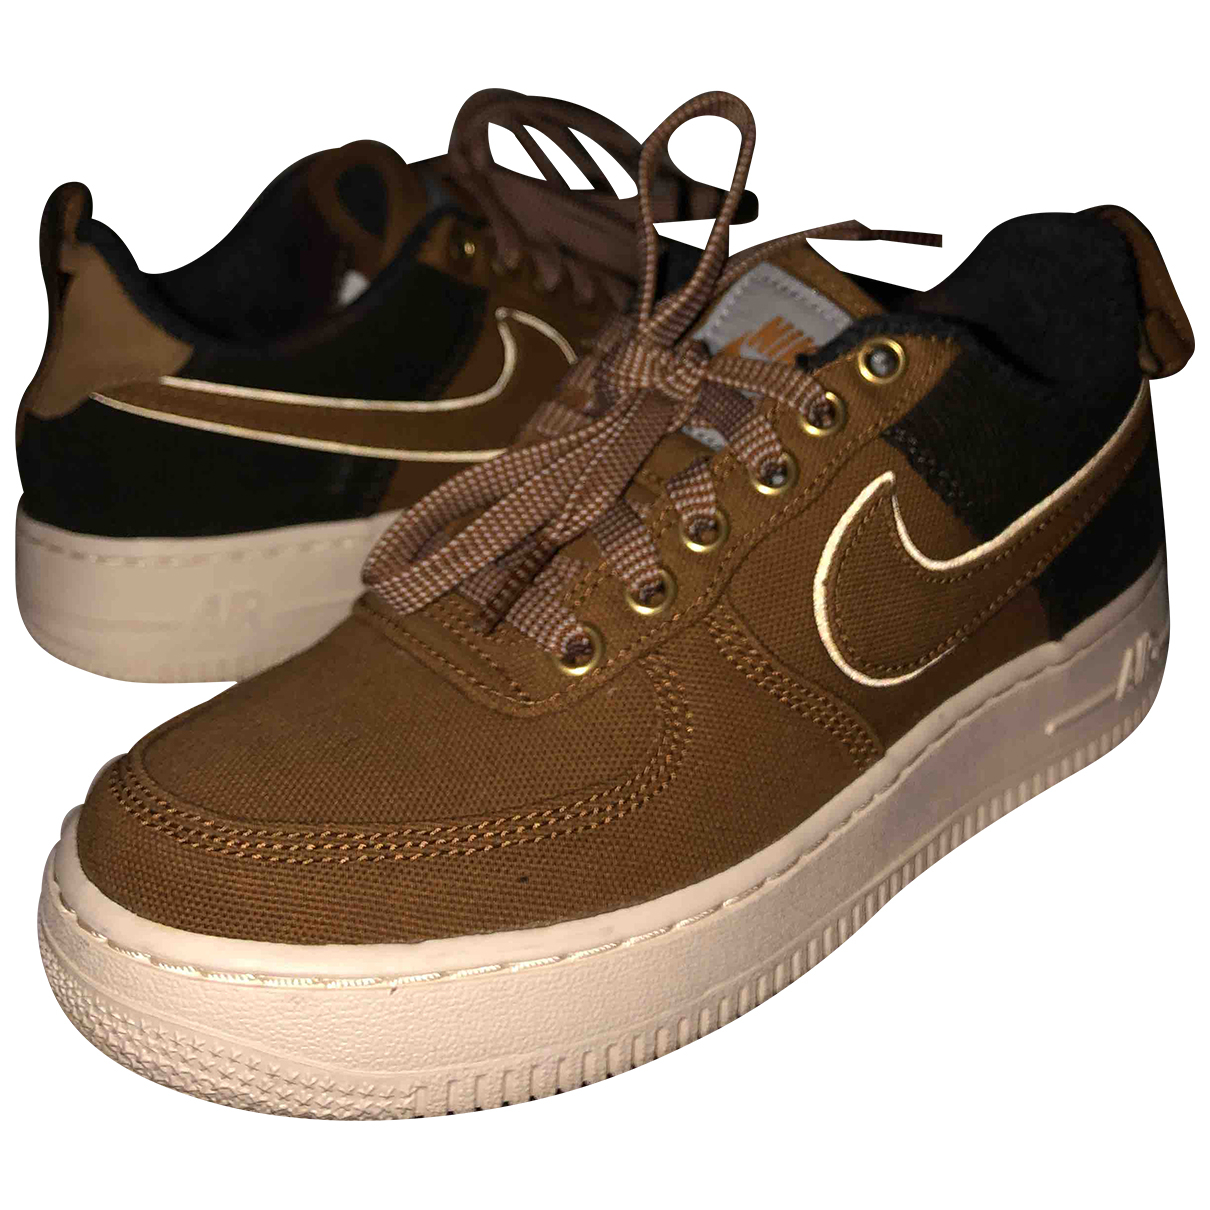 Nike - Baskets Air Force 1 pour enfant en toile - marron